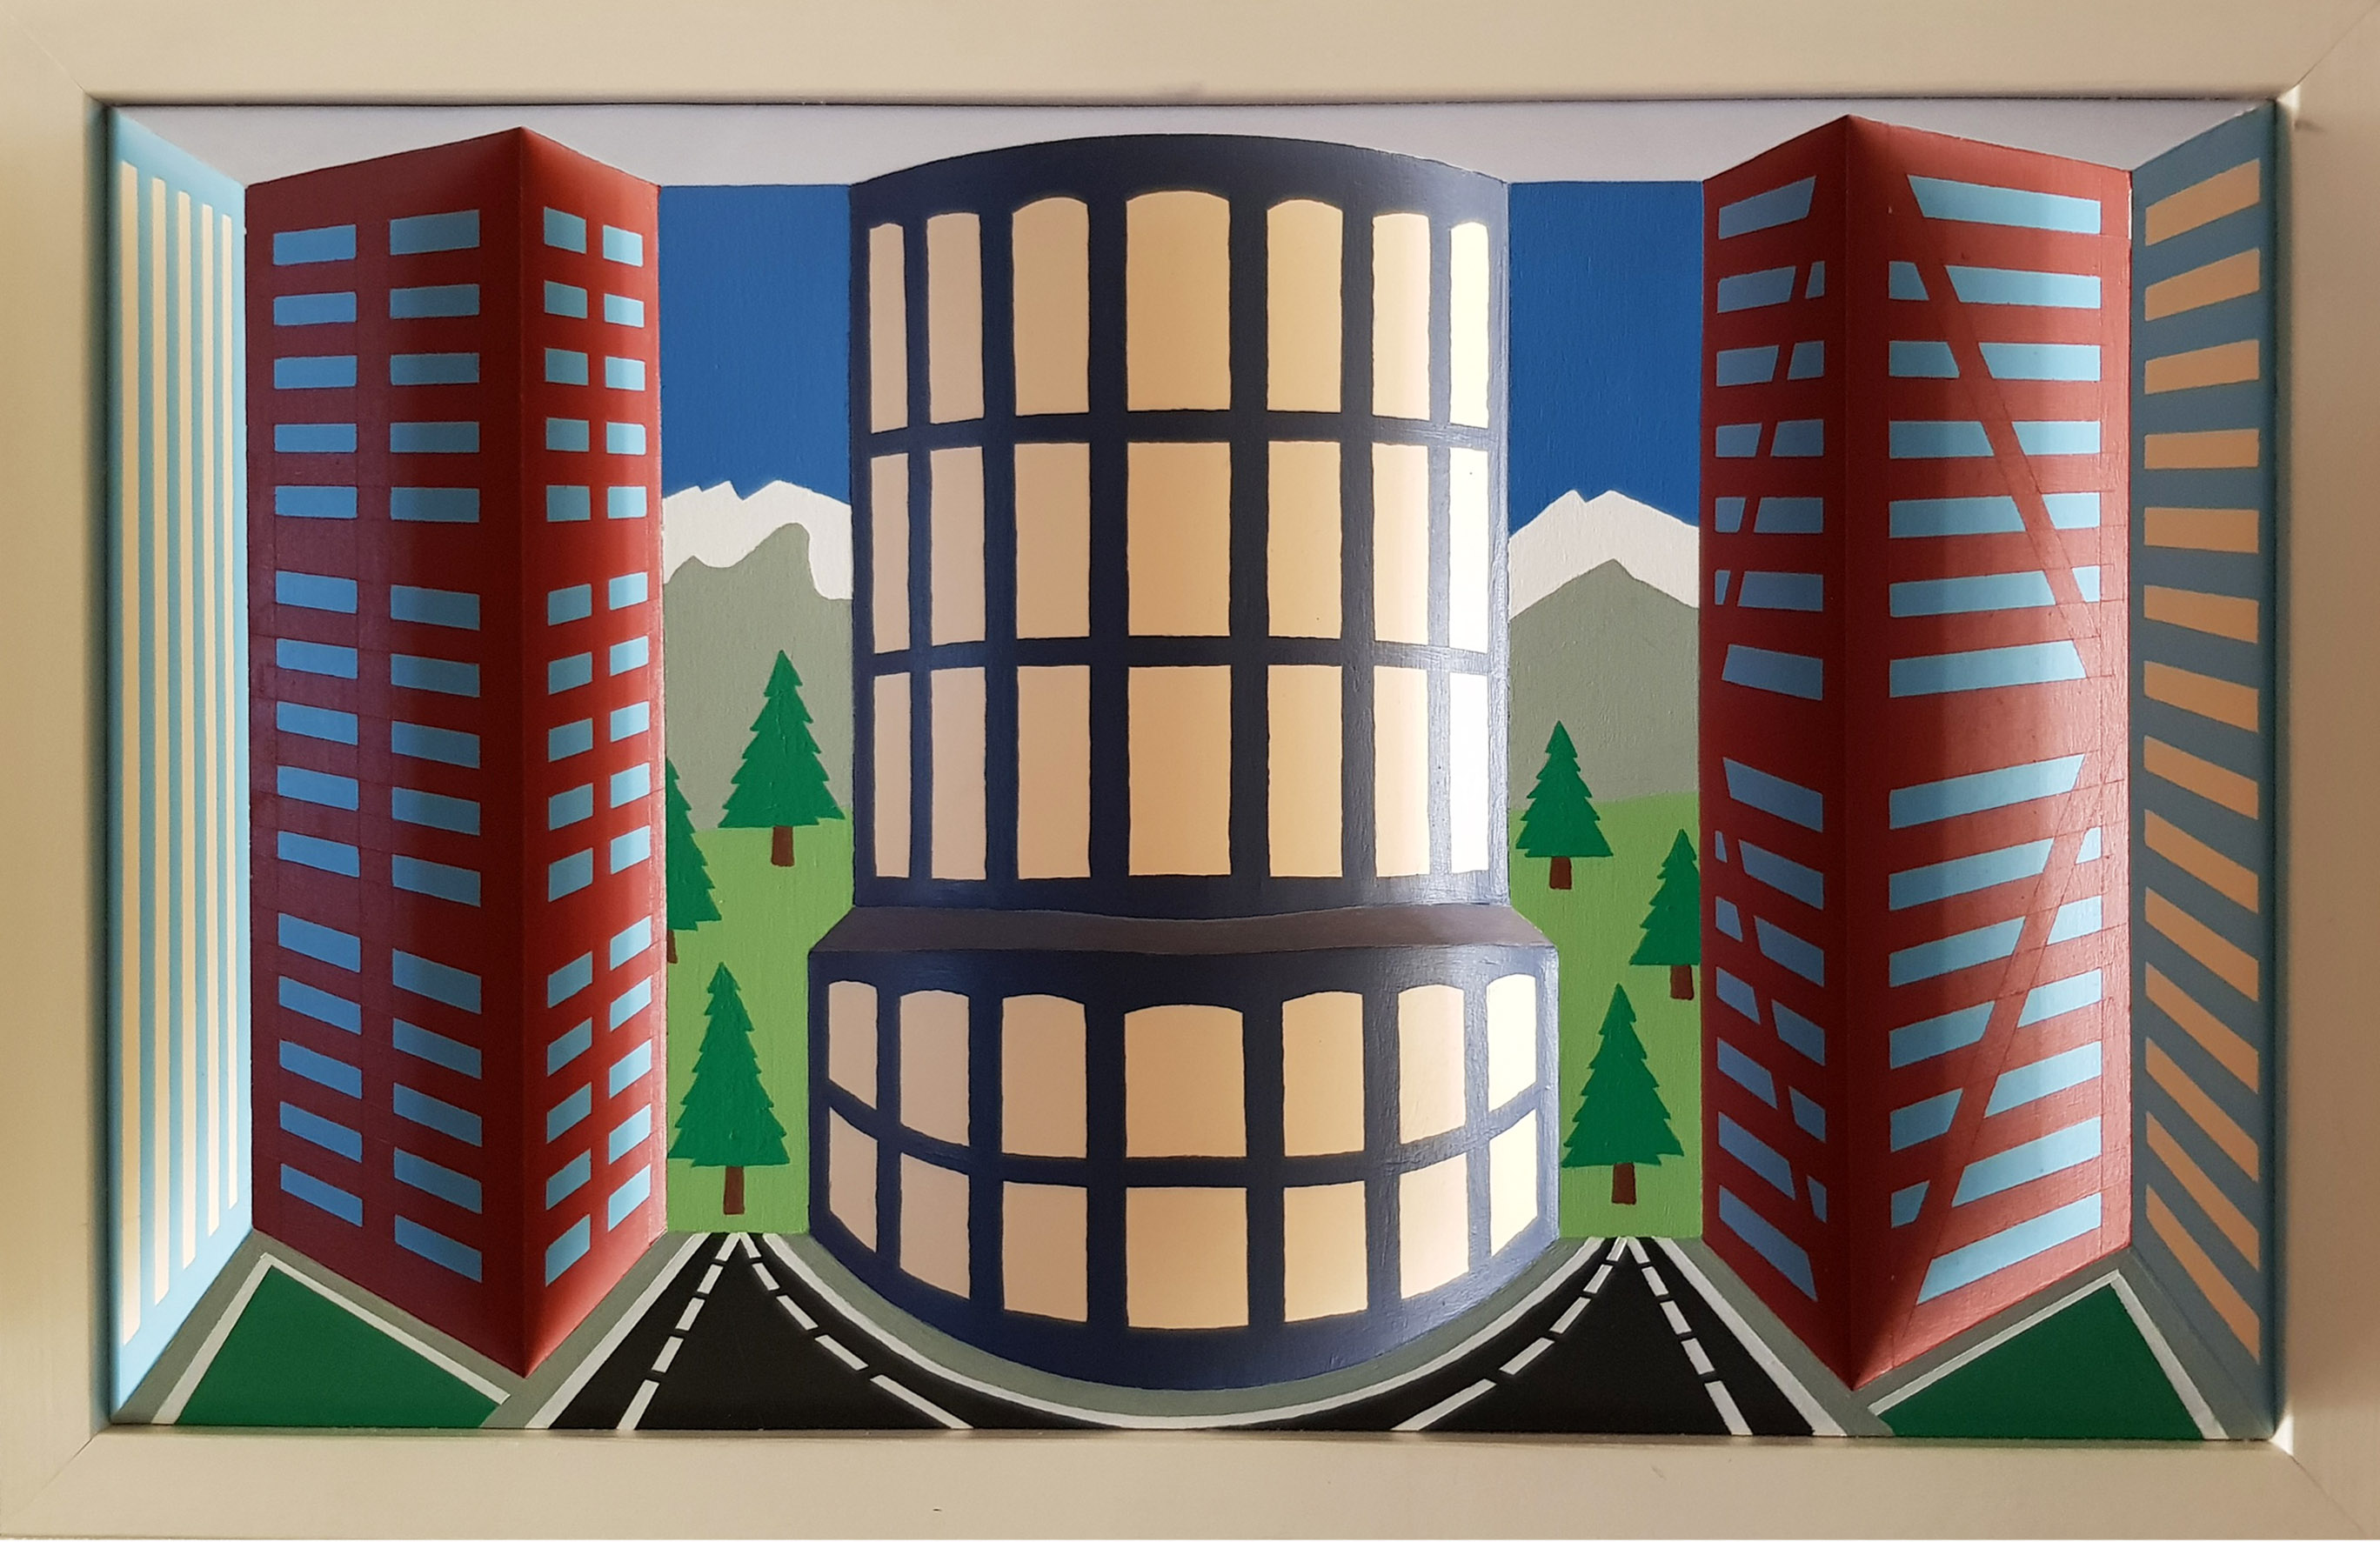 The Rotunda Tower Block 3D art by Brian Weavers